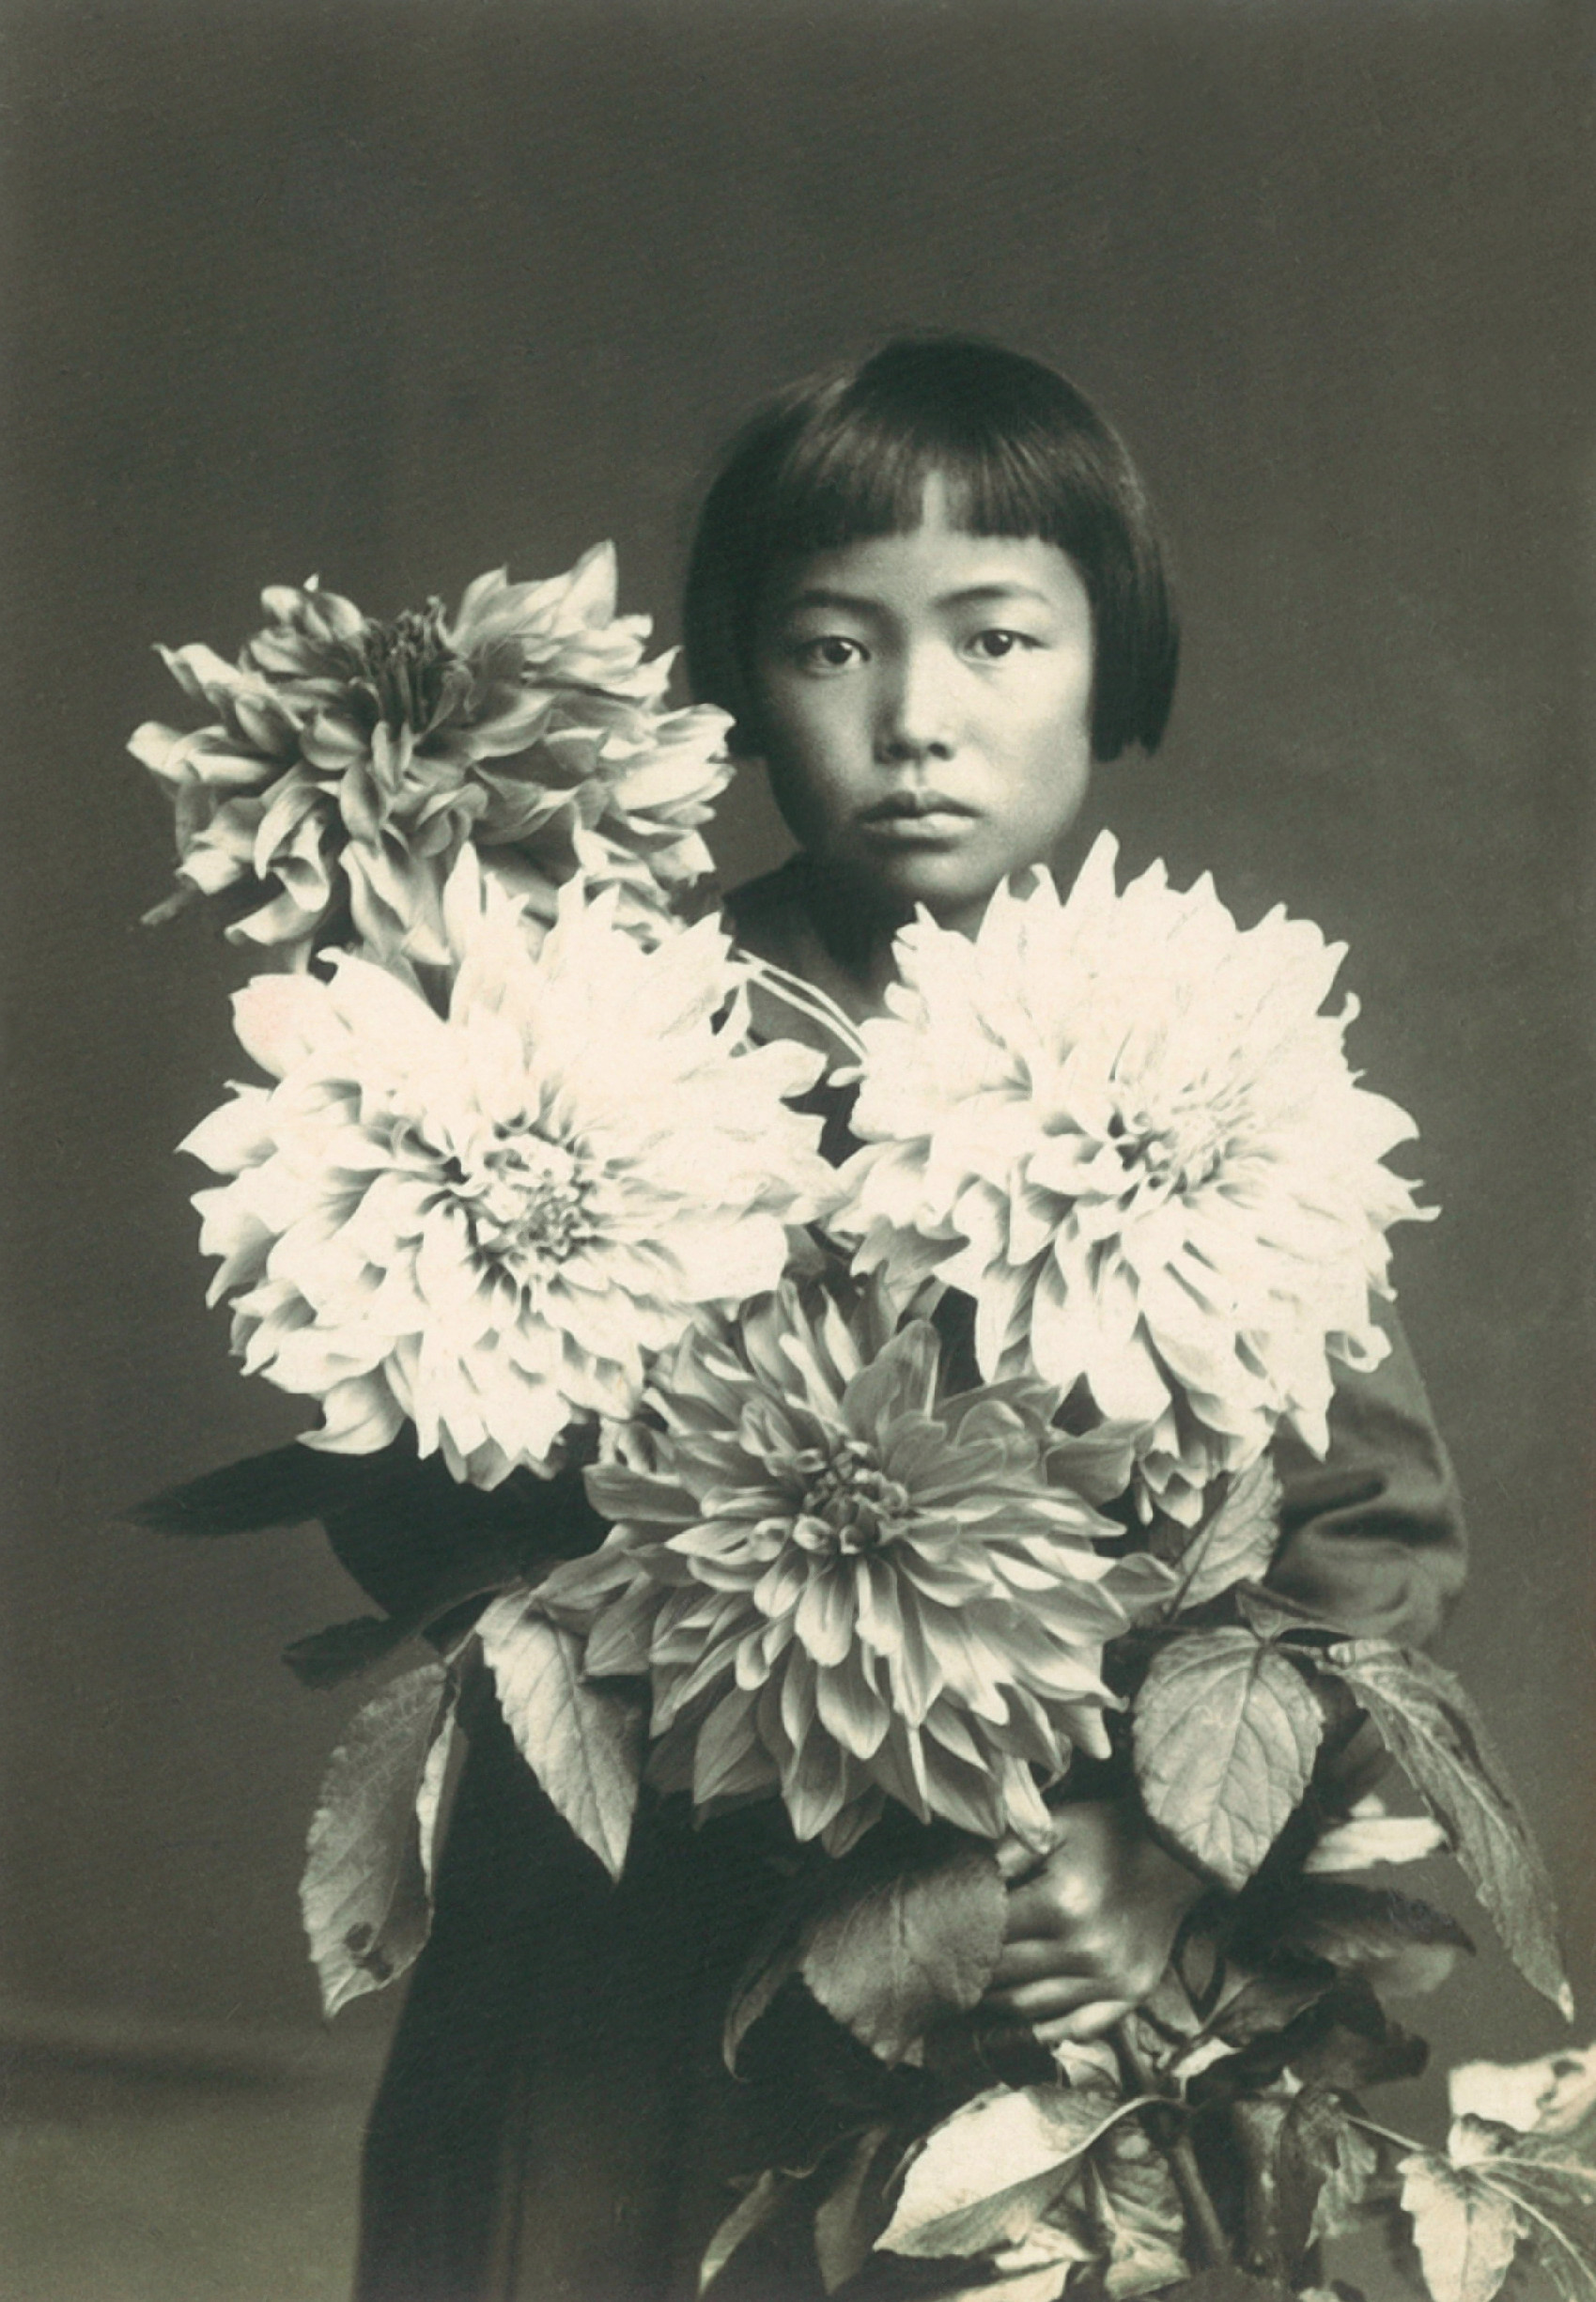 Anonymous, Yayoi Kusama at the Age of Ten in 1939. Photograph, Private collection. © Yayoi Kusama